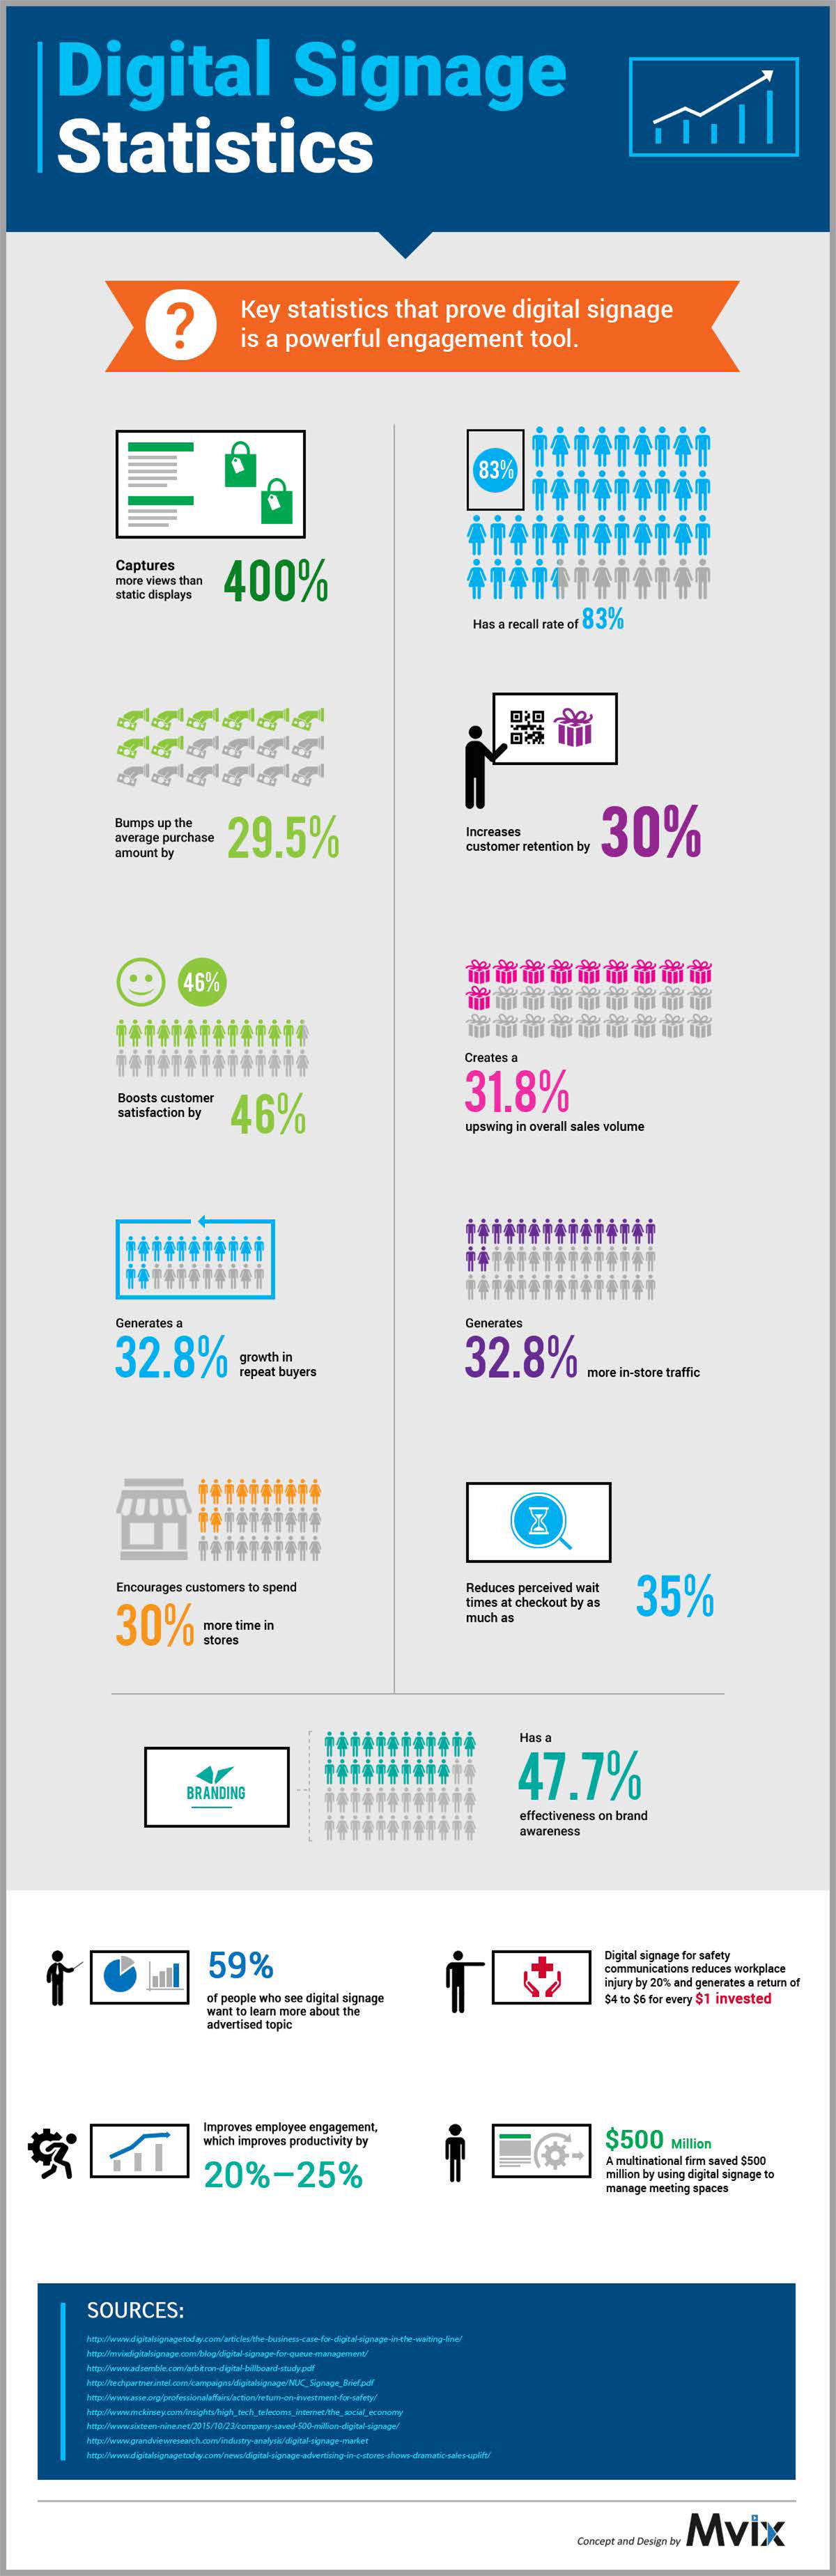 Digital Signs Statistics Infographic Shows 10 Retail Store and Restaurant Benefits